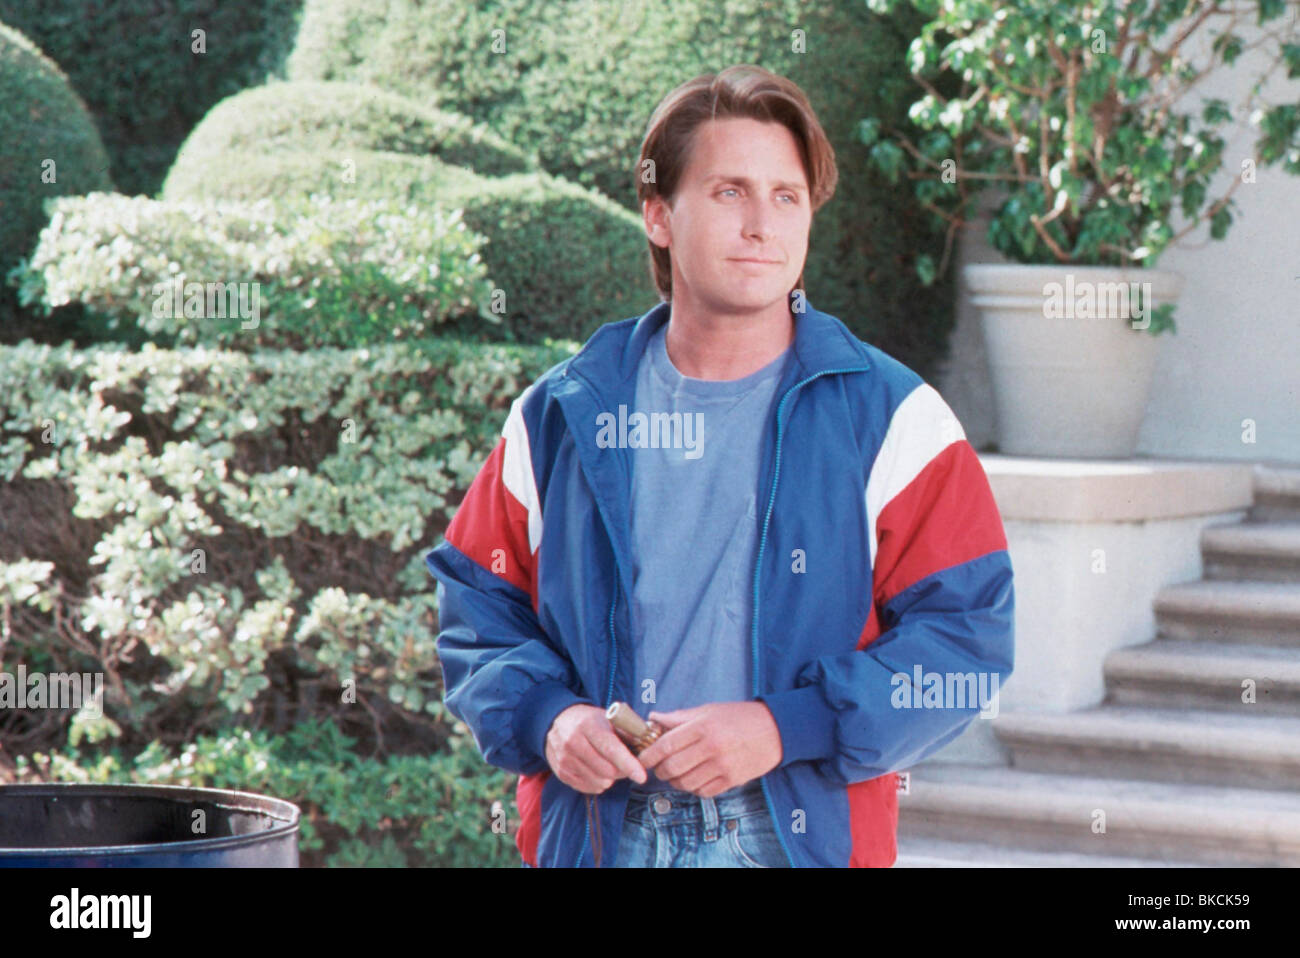 CHAMPIONS (1992) THE MIGHTY DUCKS (ALT) EMILIO ESTEVEZ CHMP 026 - Stock Image